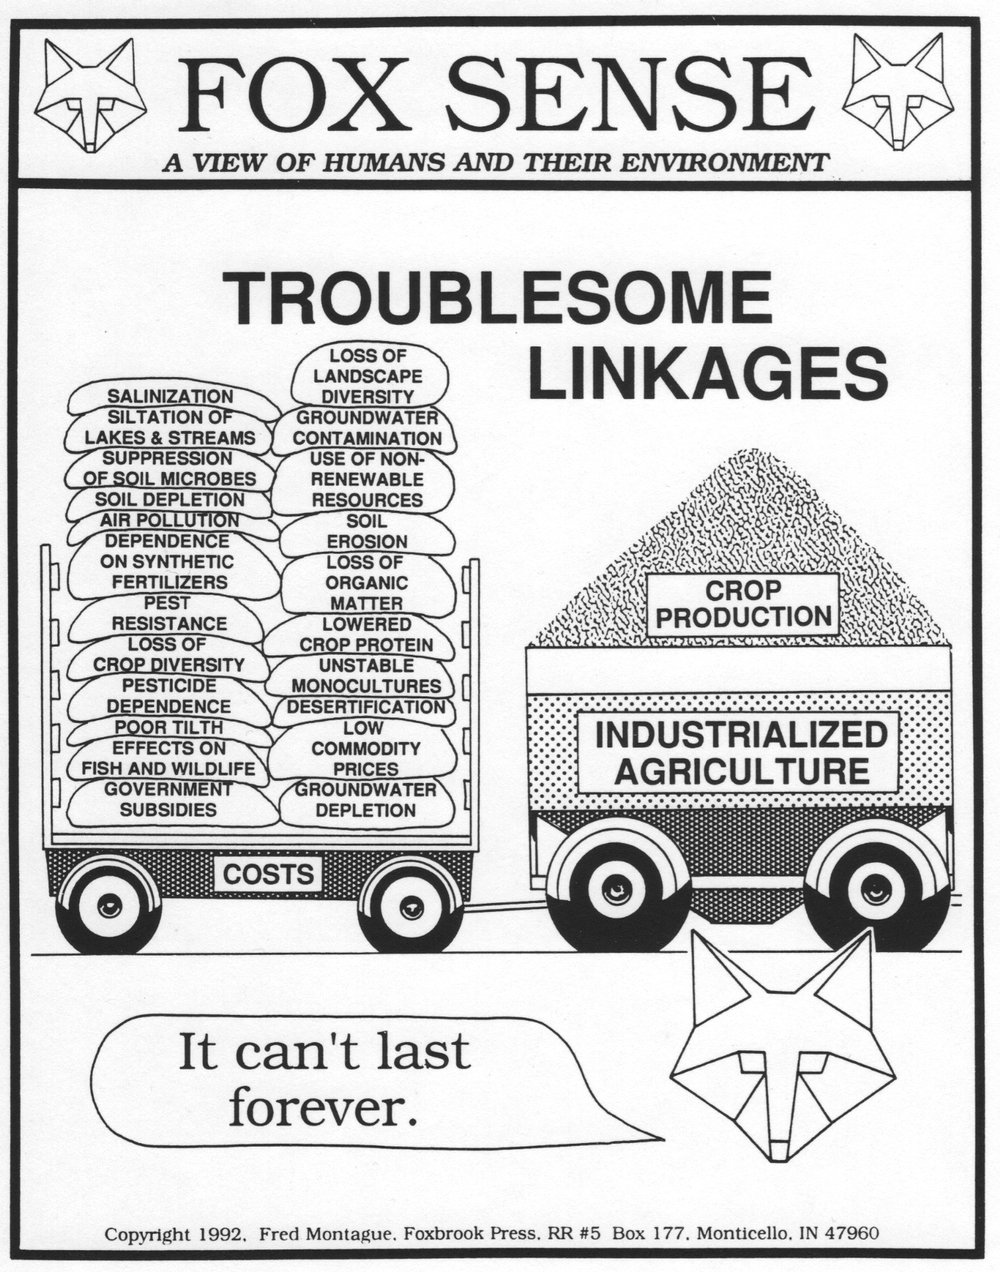 Troublesome Linkages from FoxSense